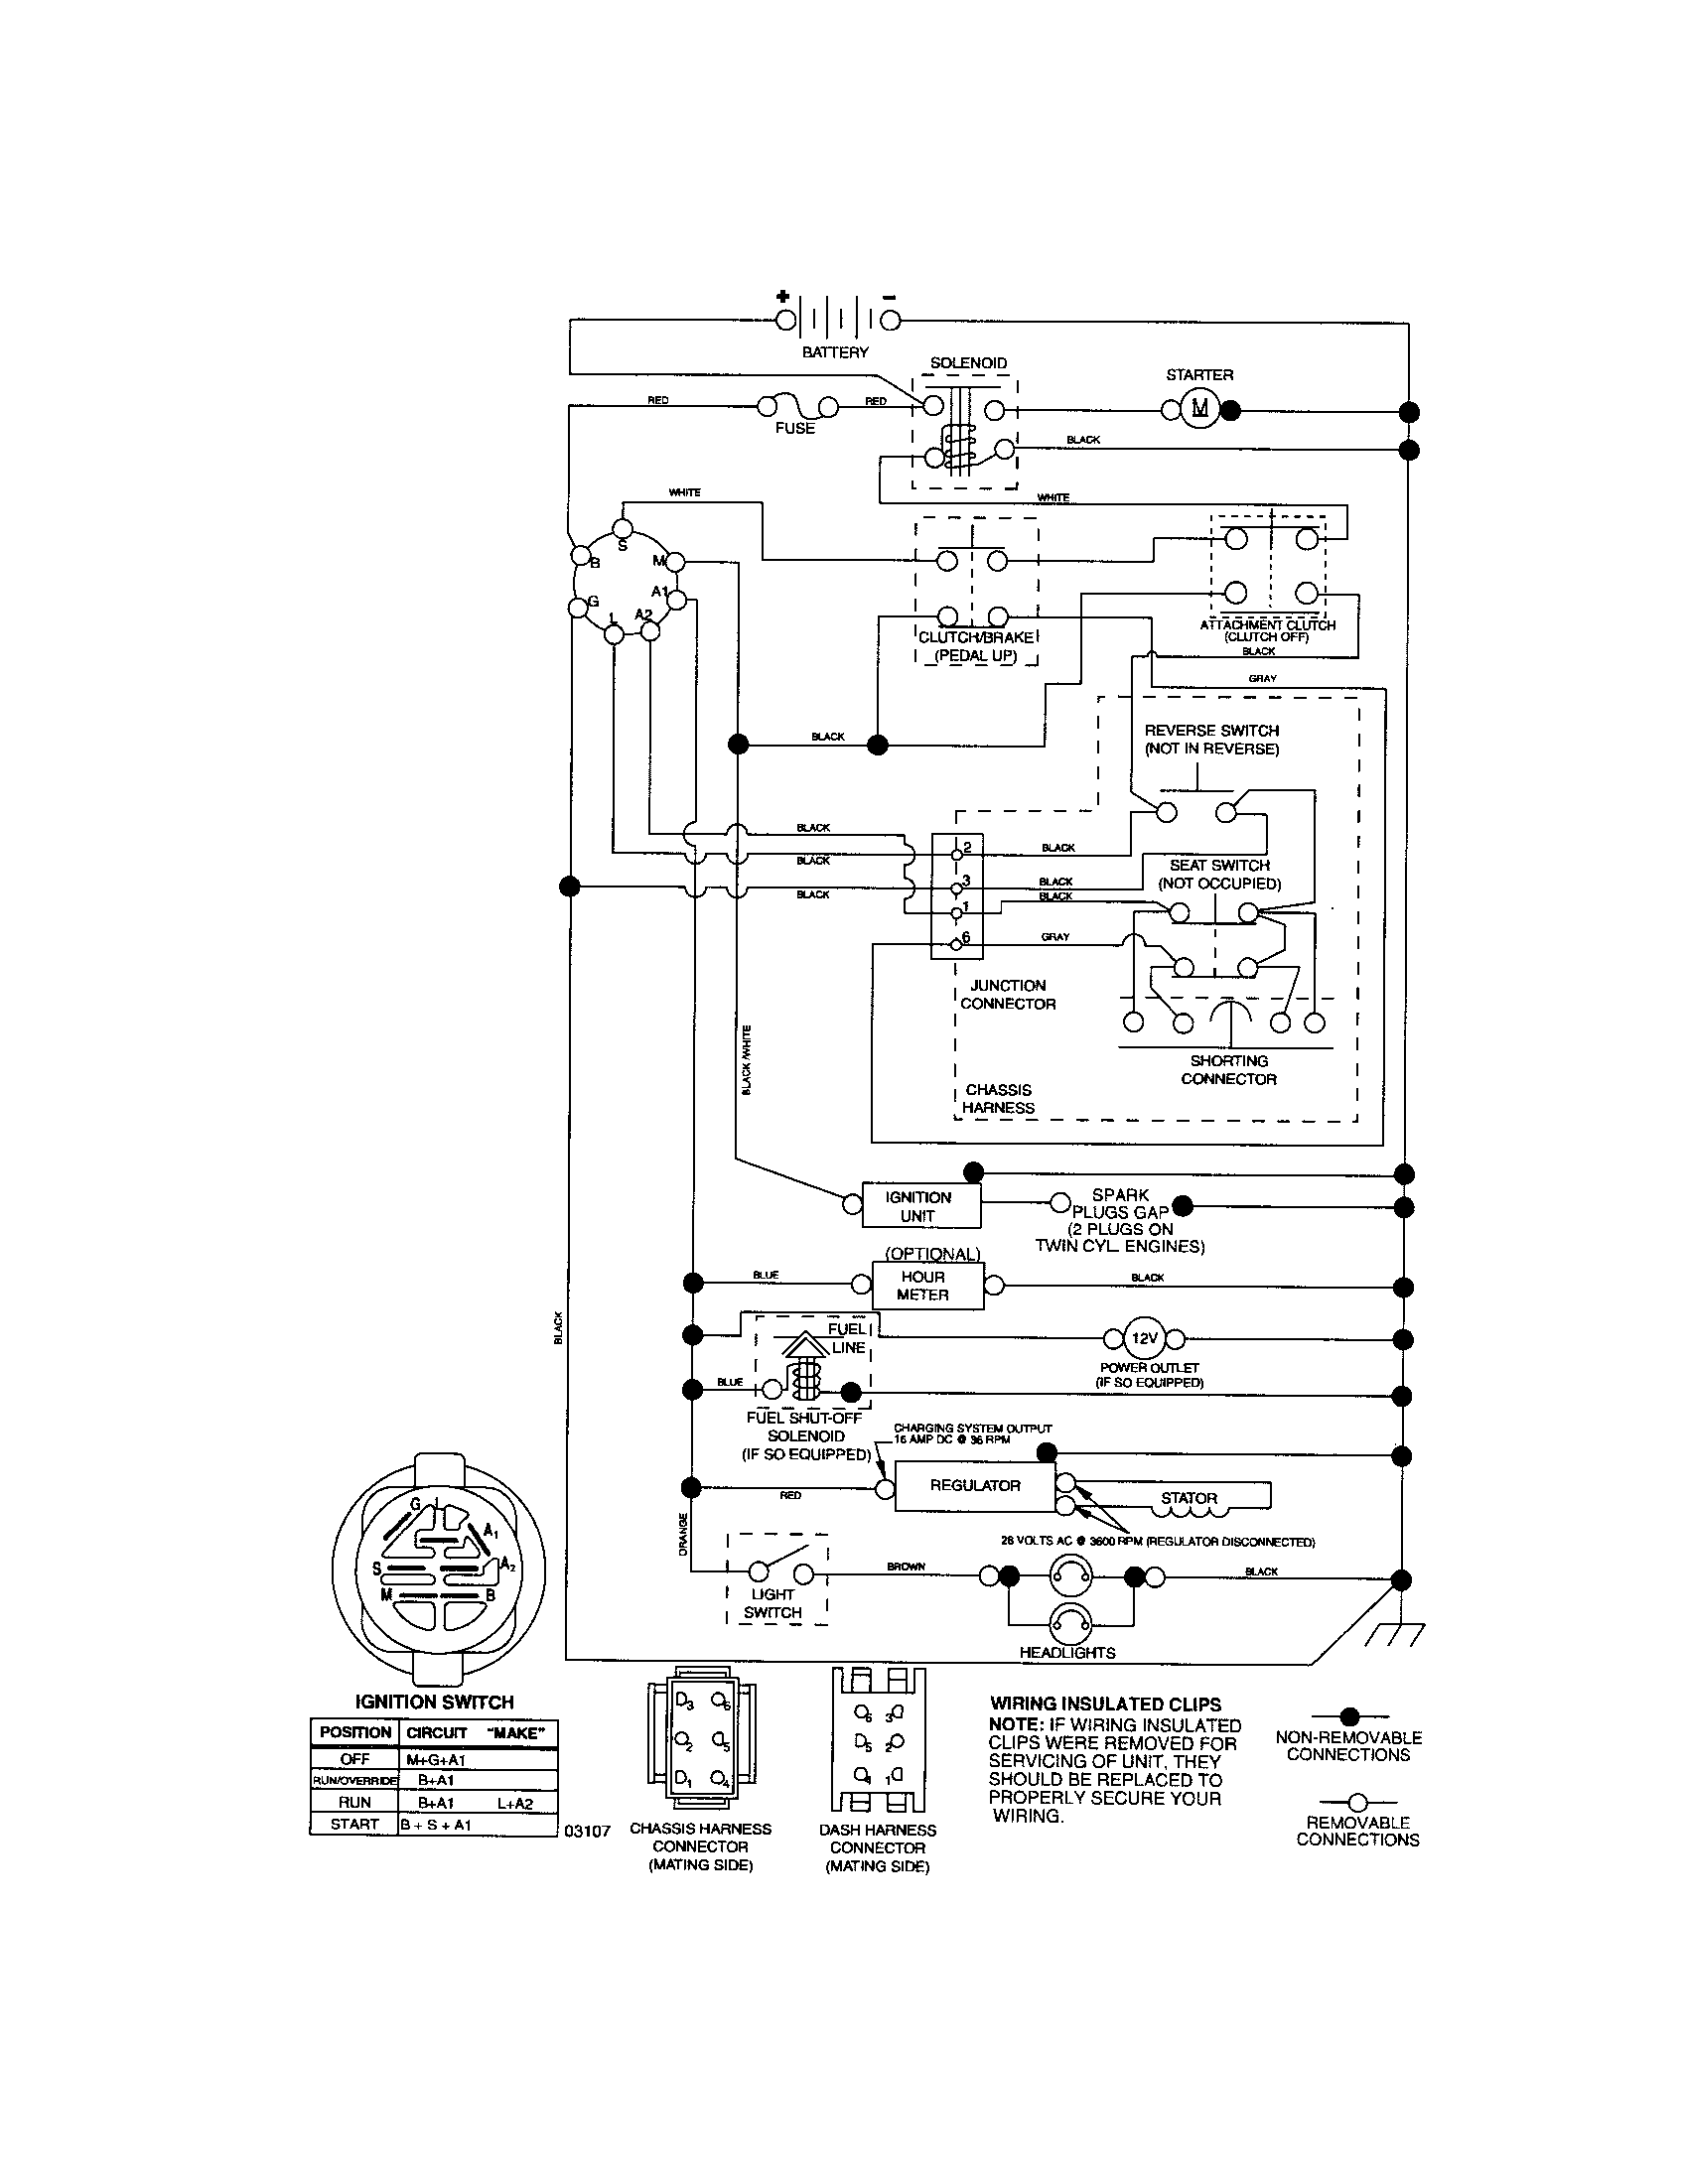 hight resolution of sears lawn mower wiring diagram my wiring diagram sears kenmore sewing machine wire diagram craftsman riding